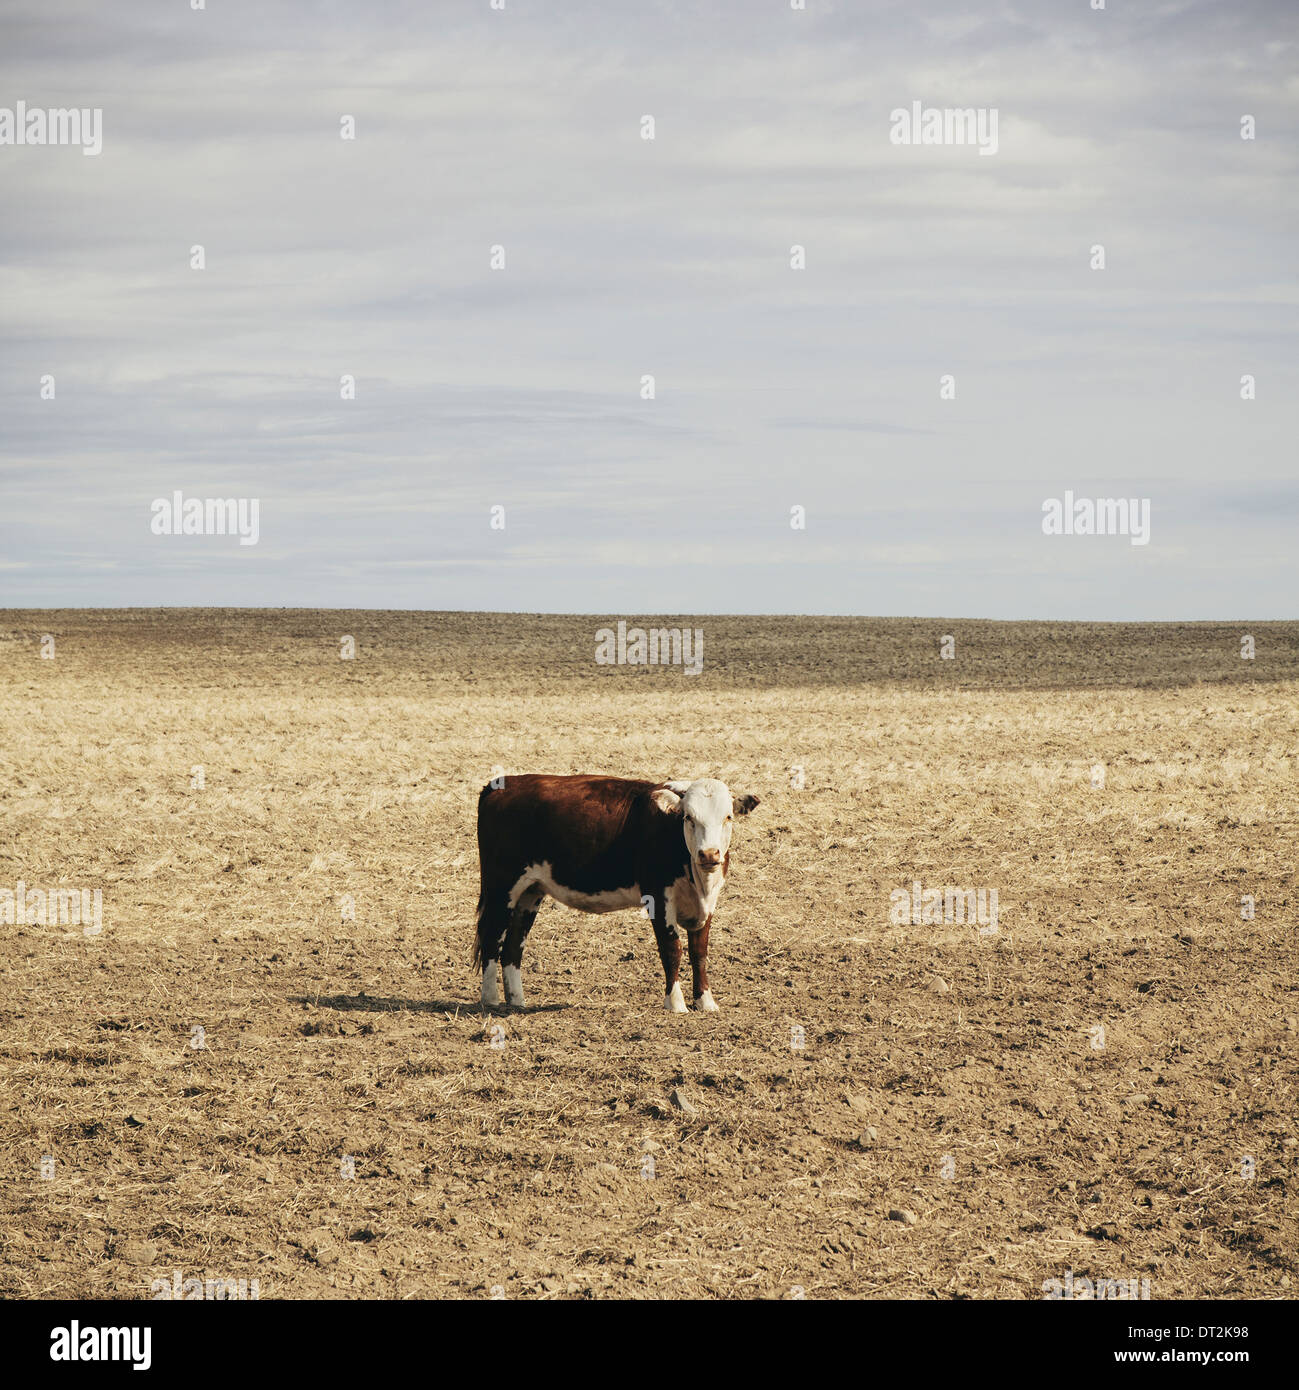 A cow standing in an open field in Palouse in Whitman County Washington in the USA - Stock Image